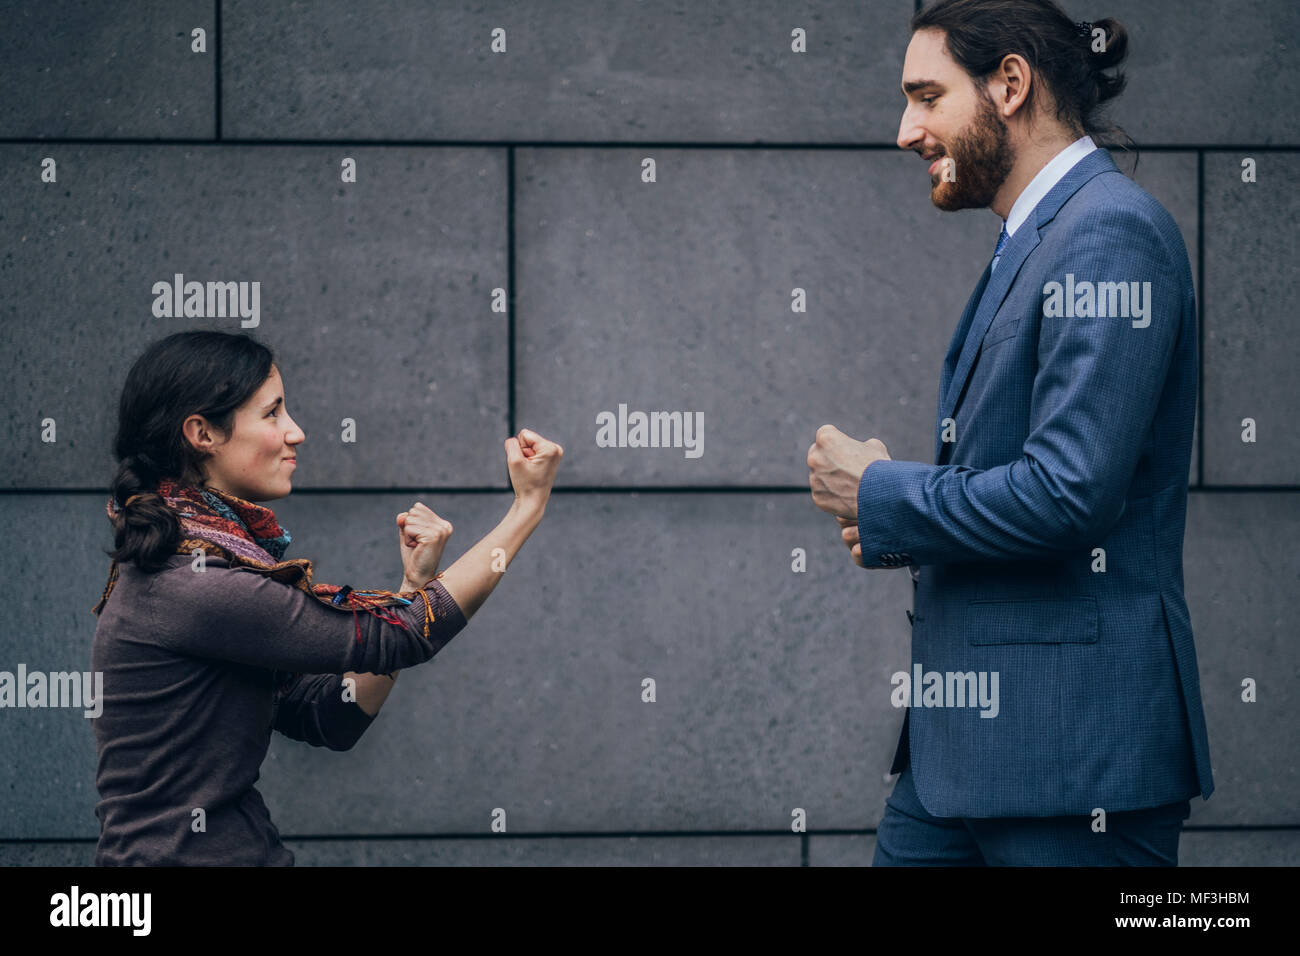 Businessman and woman fighting - Stock Image